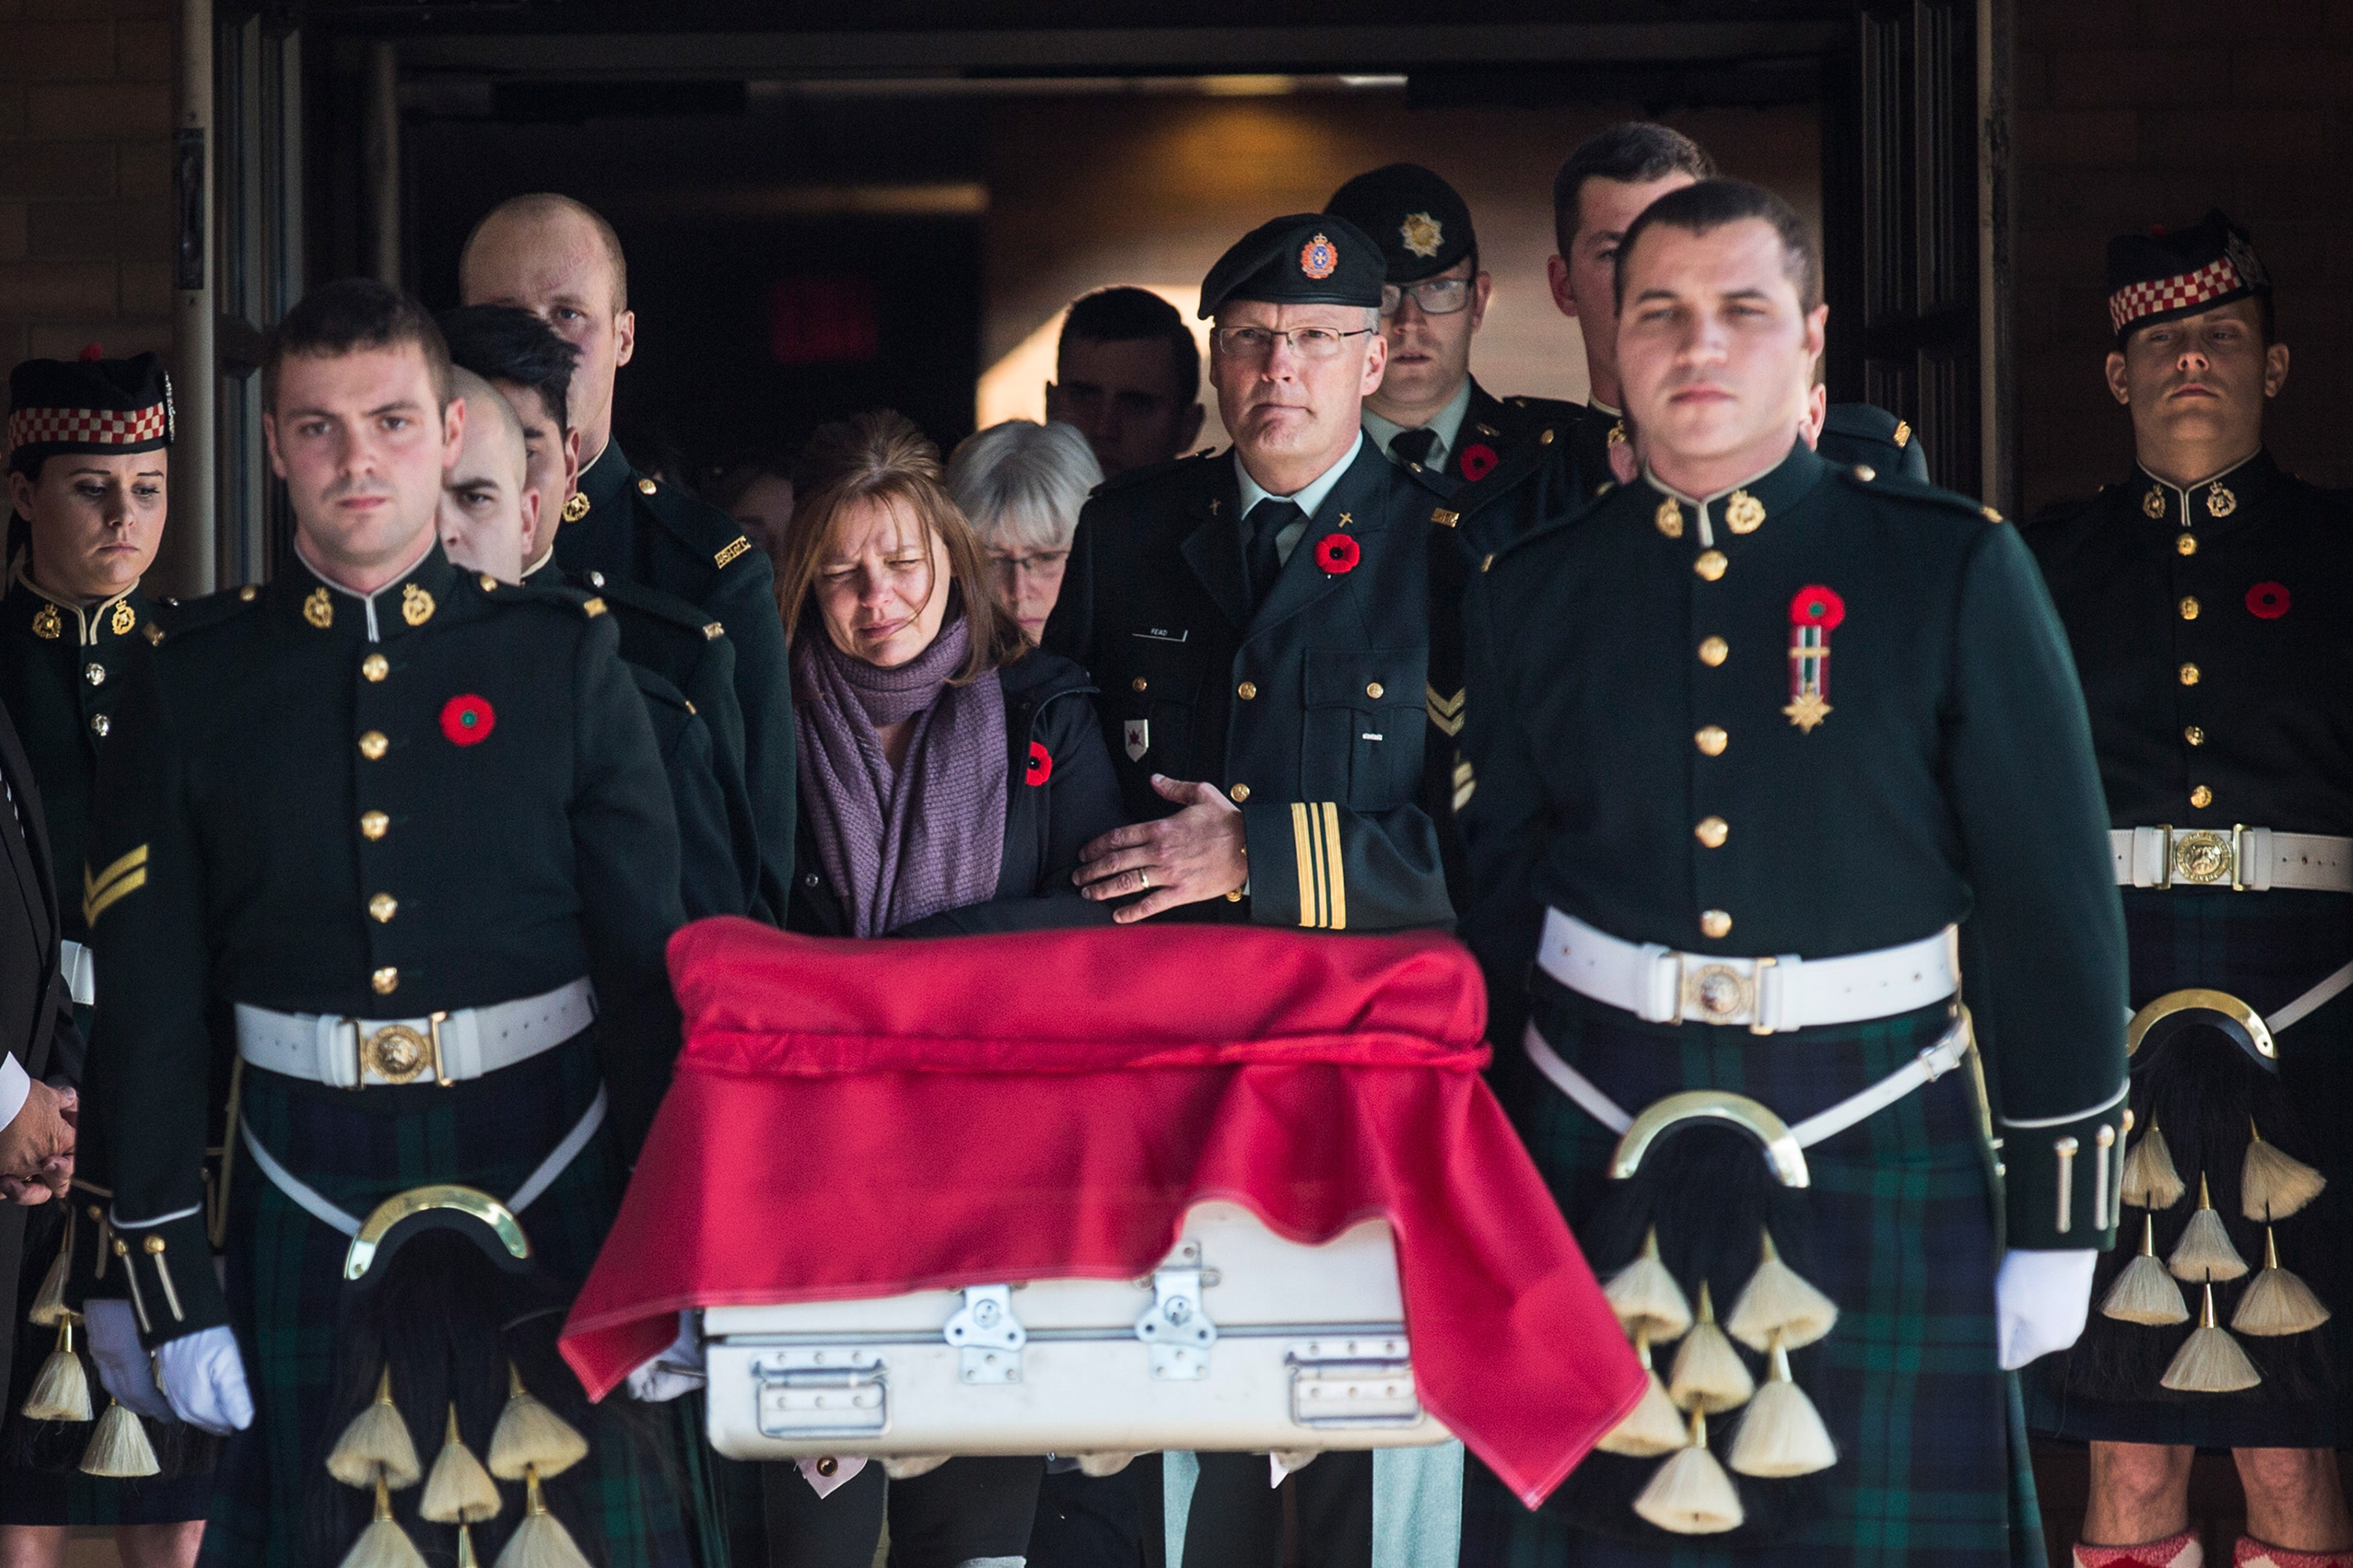 Oct. 24, 2014. Kathy Cirillo (center left), the mother of Cpl. Nathan Cirillo, follows the casket carrying her son, two days after he was shot dead by a gunman while he guarded the National War Memorial, during a precession from Ottawa to Cirillo's hometown of Hamilton, Ontario, in Ottawa, Canada.